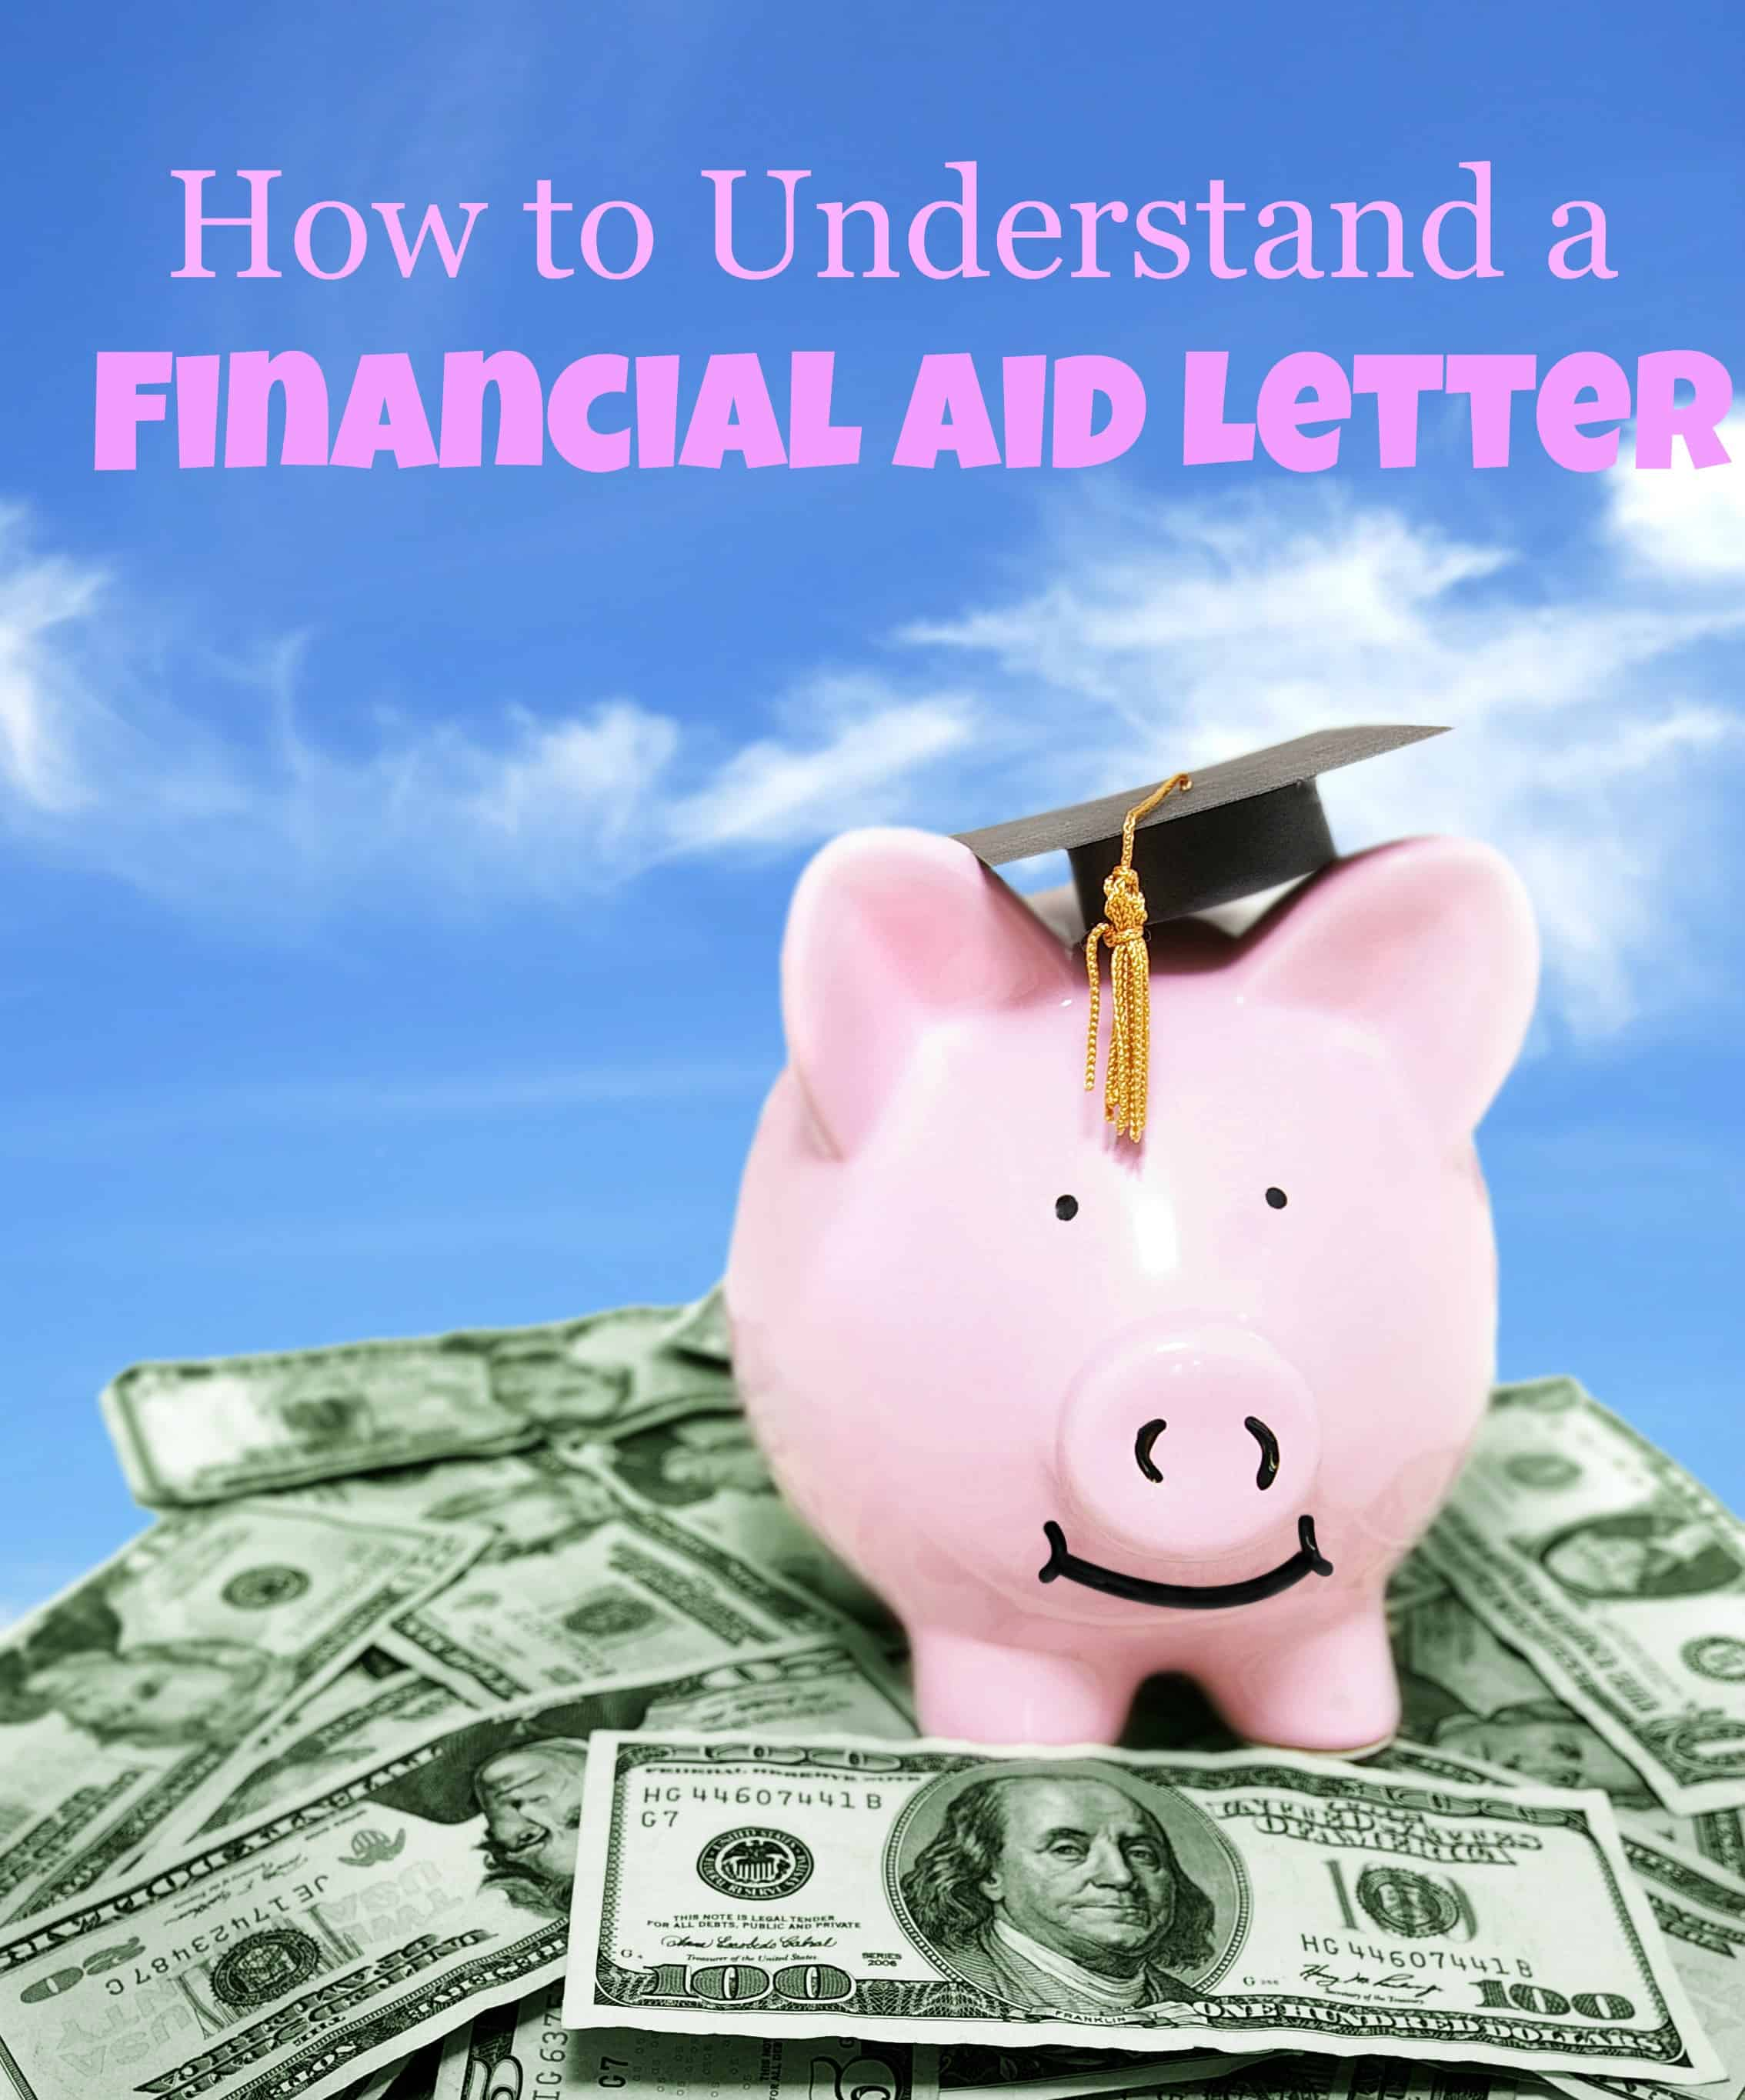 How to Understand a Financial Aid Letter